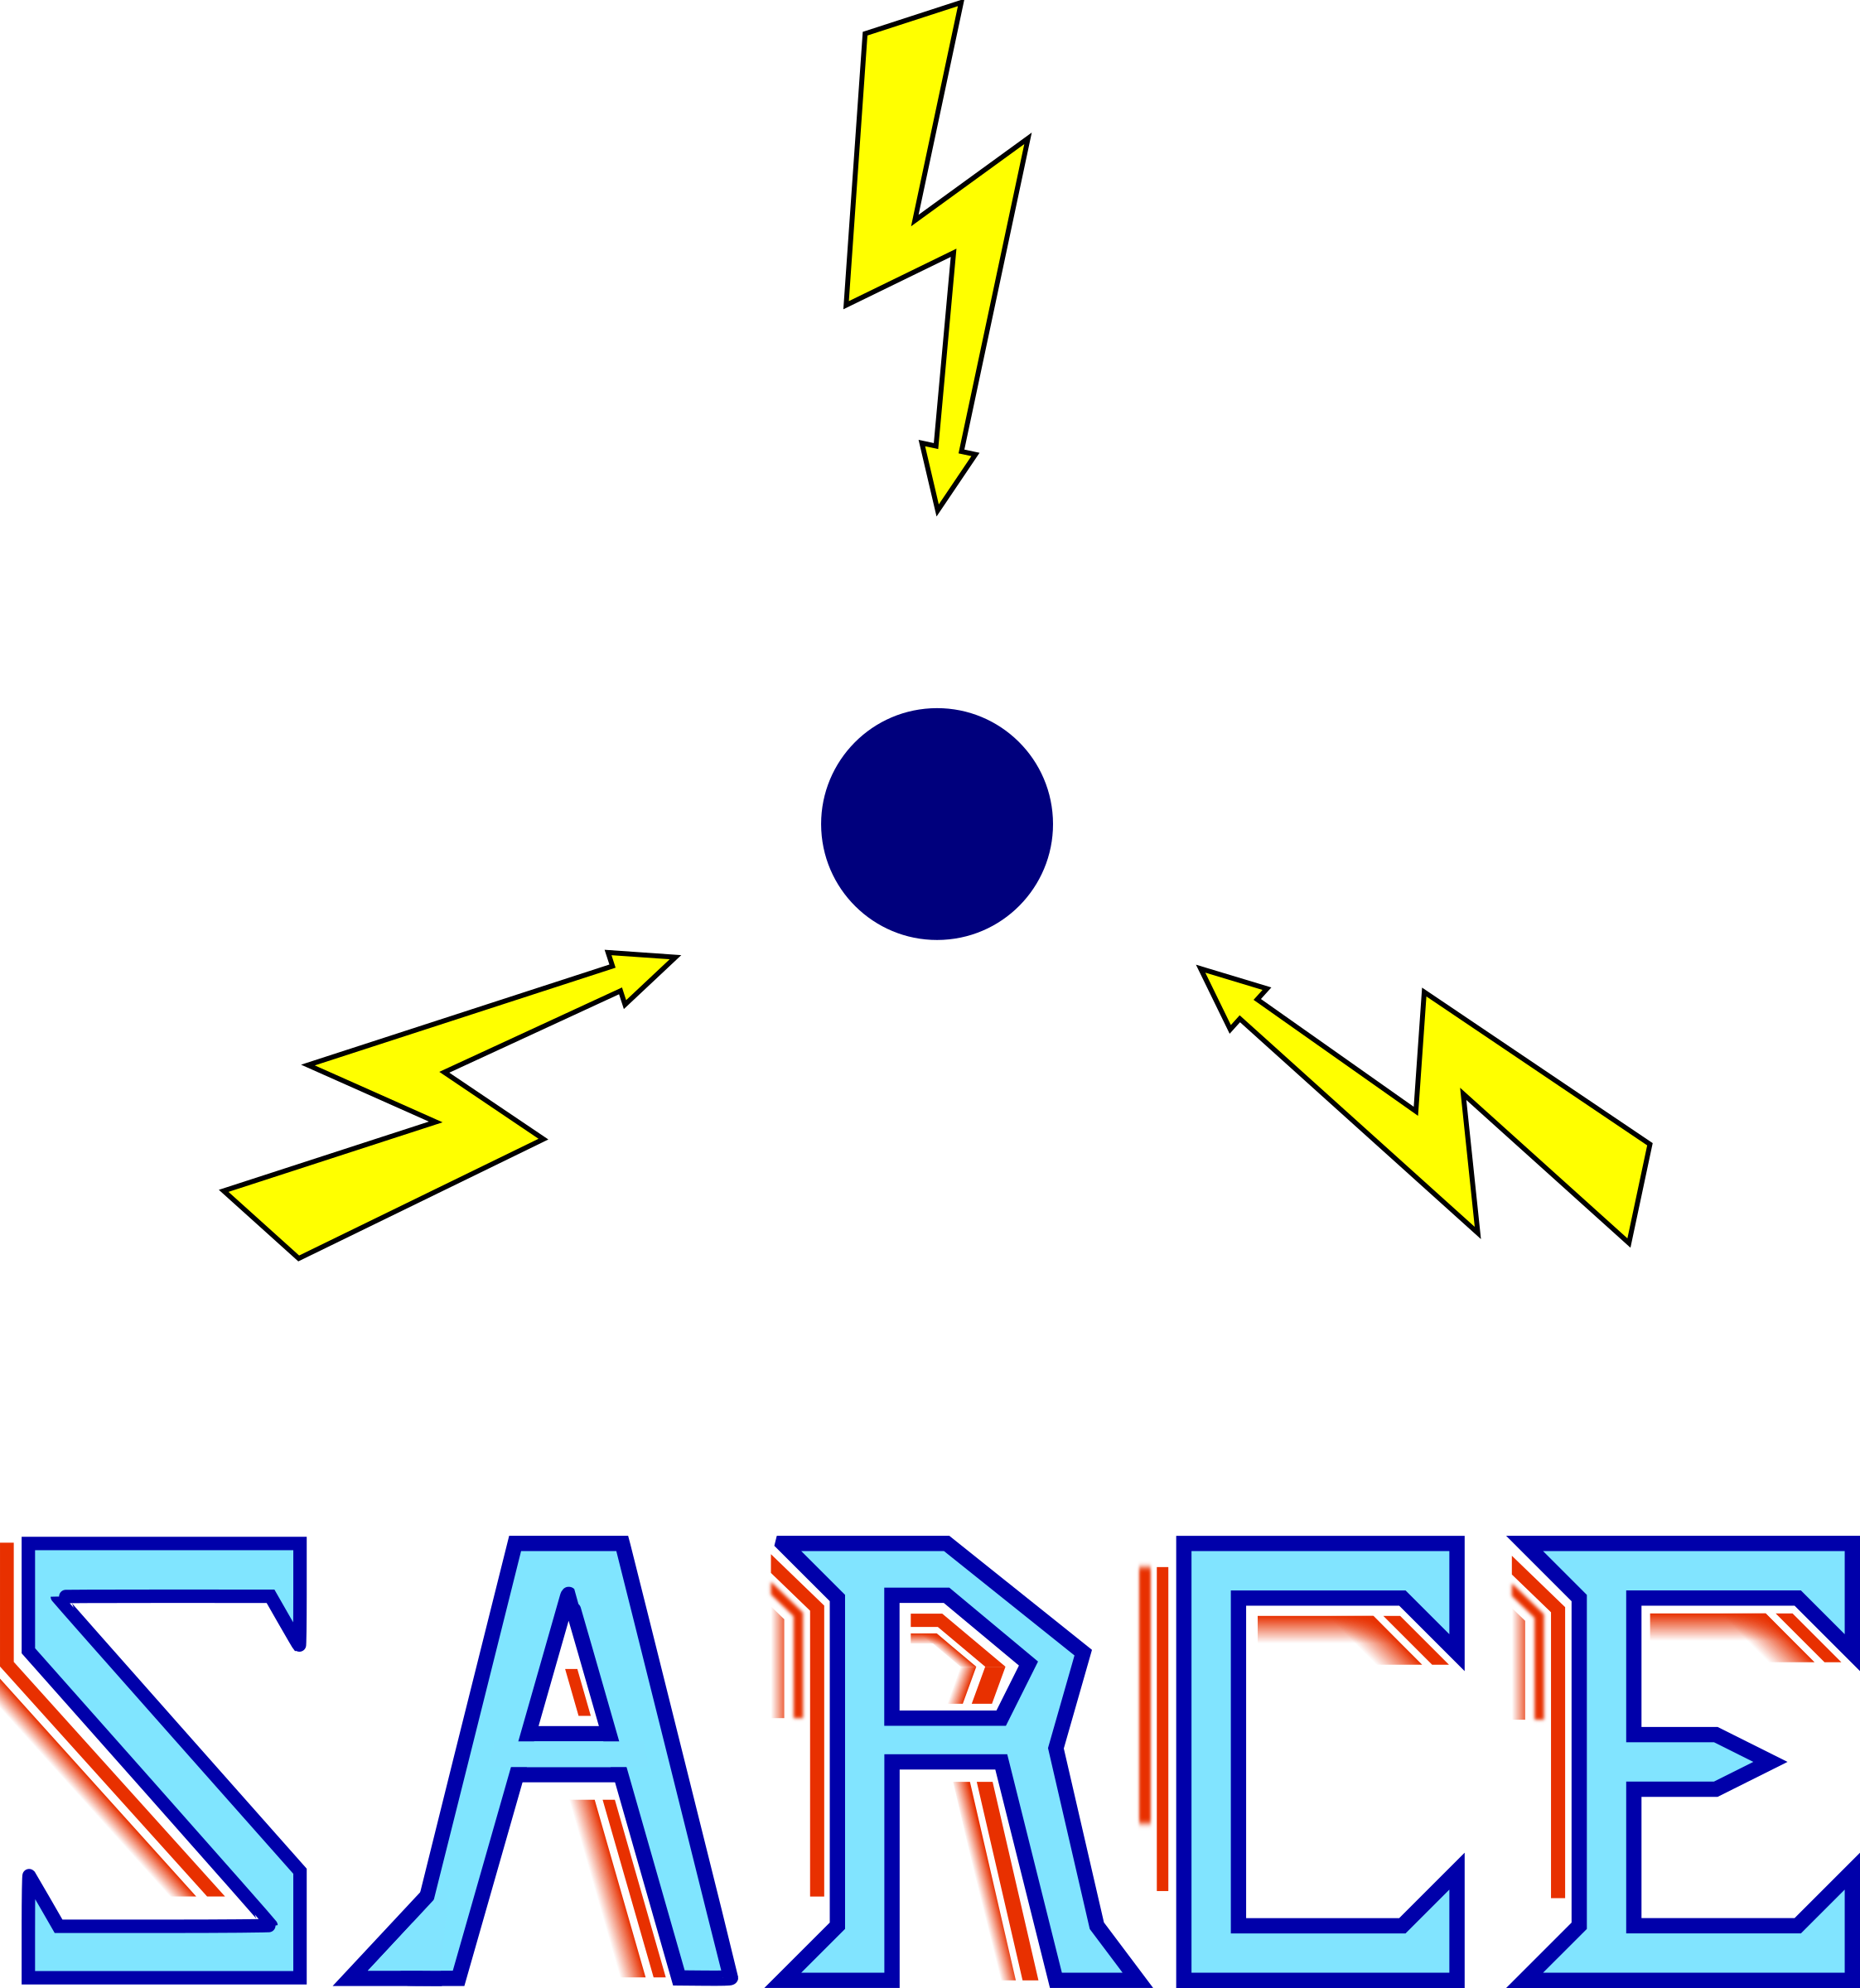 SARCE icon by corentincharousset